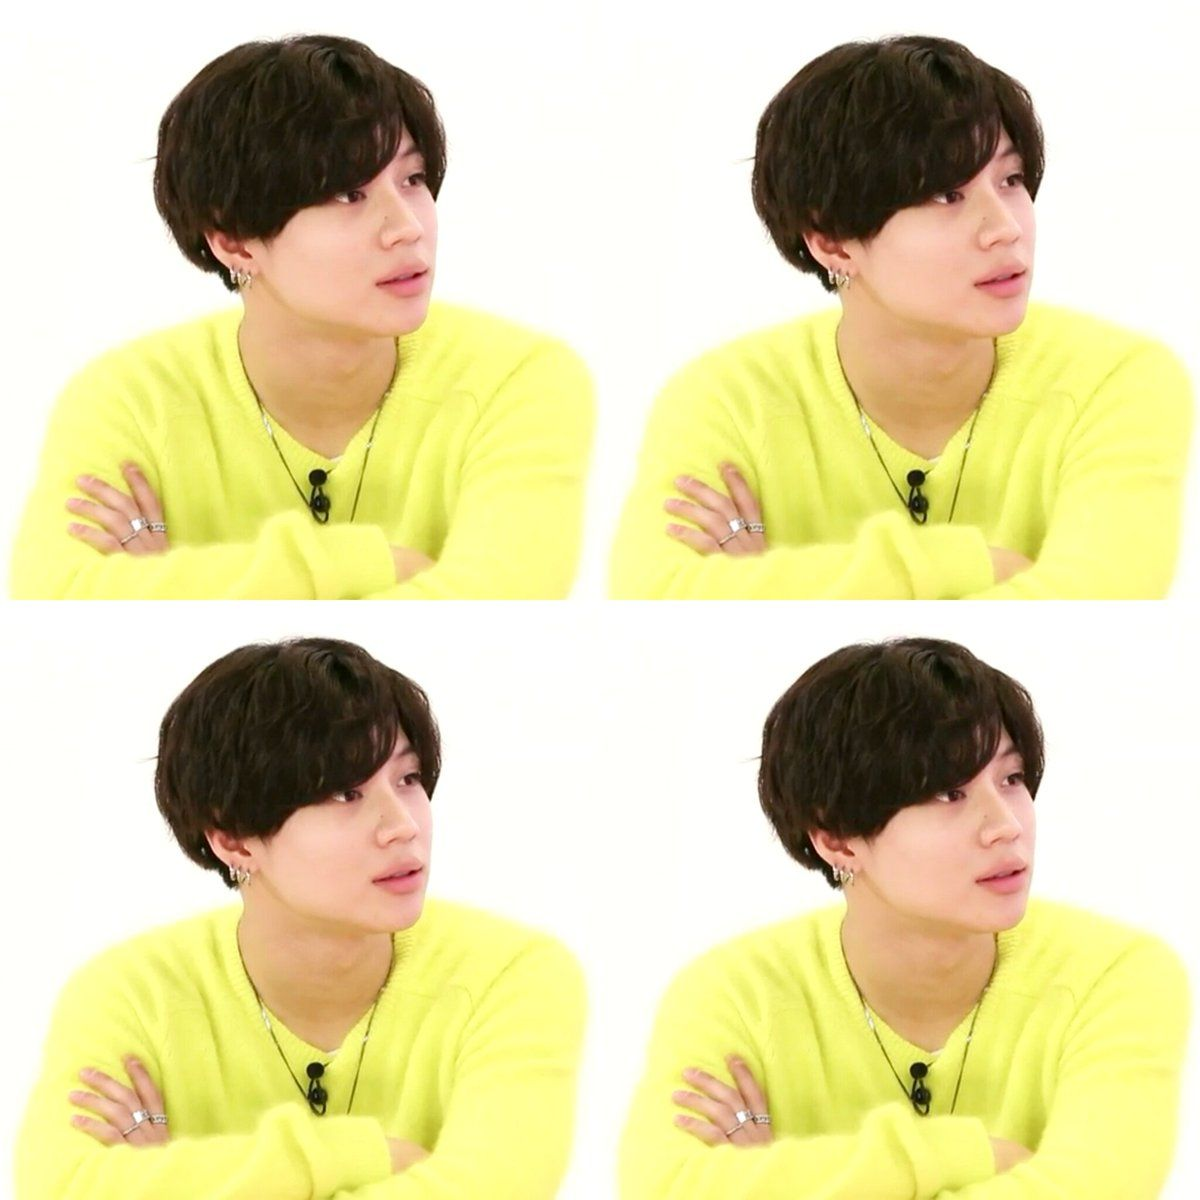 160926 SM's Chinese live Show 'MY SMT' #Shinee #Taemin